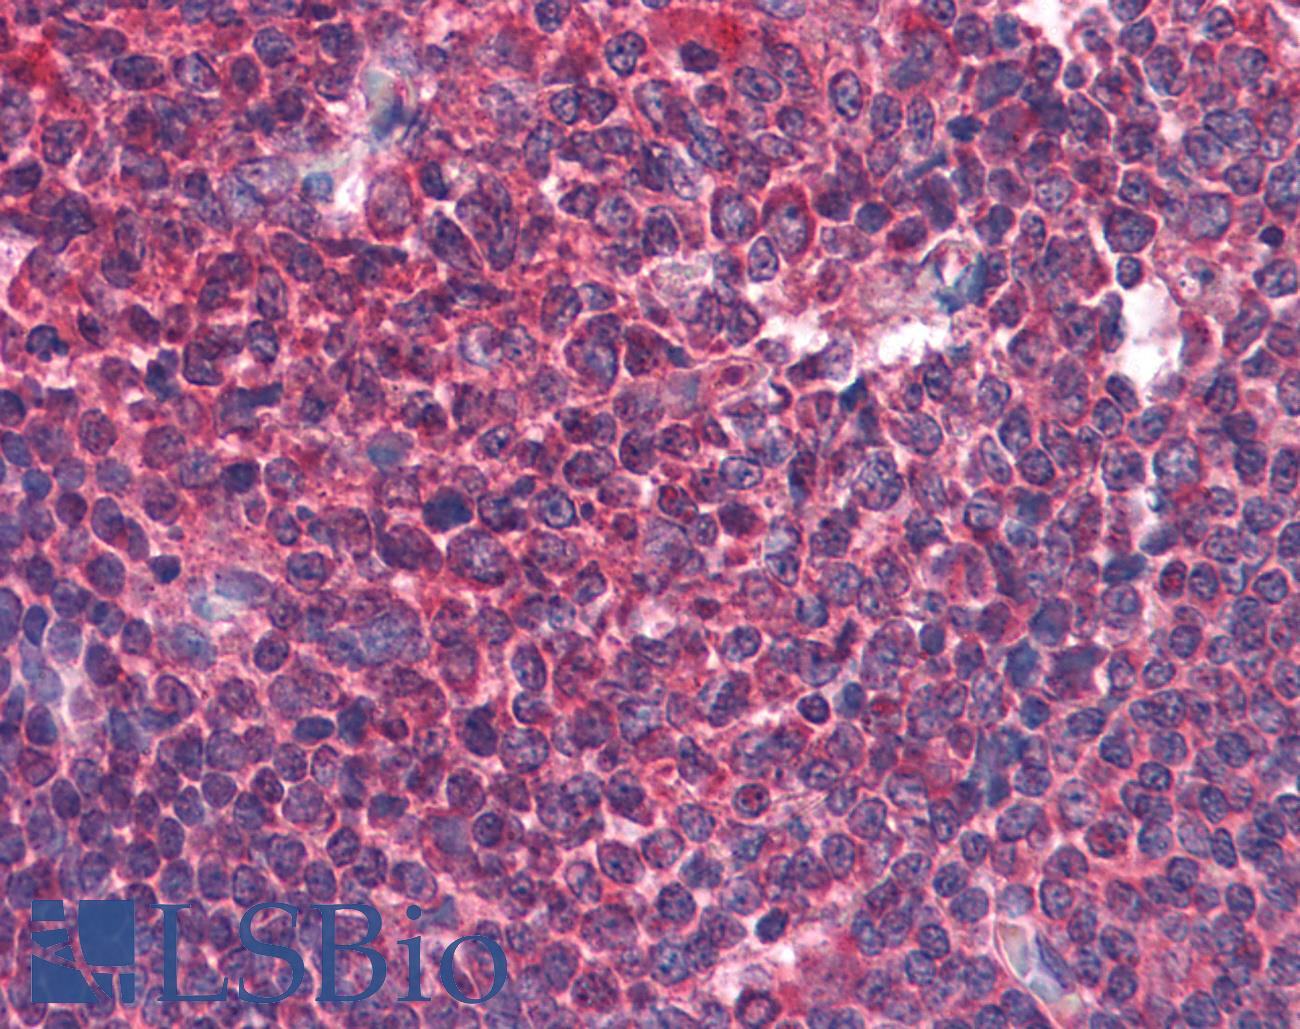 BIRC3 / cIAP2 Antibody - Anti-cIAP2 antibody IHC of human tonsil. Immunohistochemistry of formalin-fixed, paraffin-embedded tissue after heat-induced antigen retrieval. Antibody concentration 10 ug/ml.